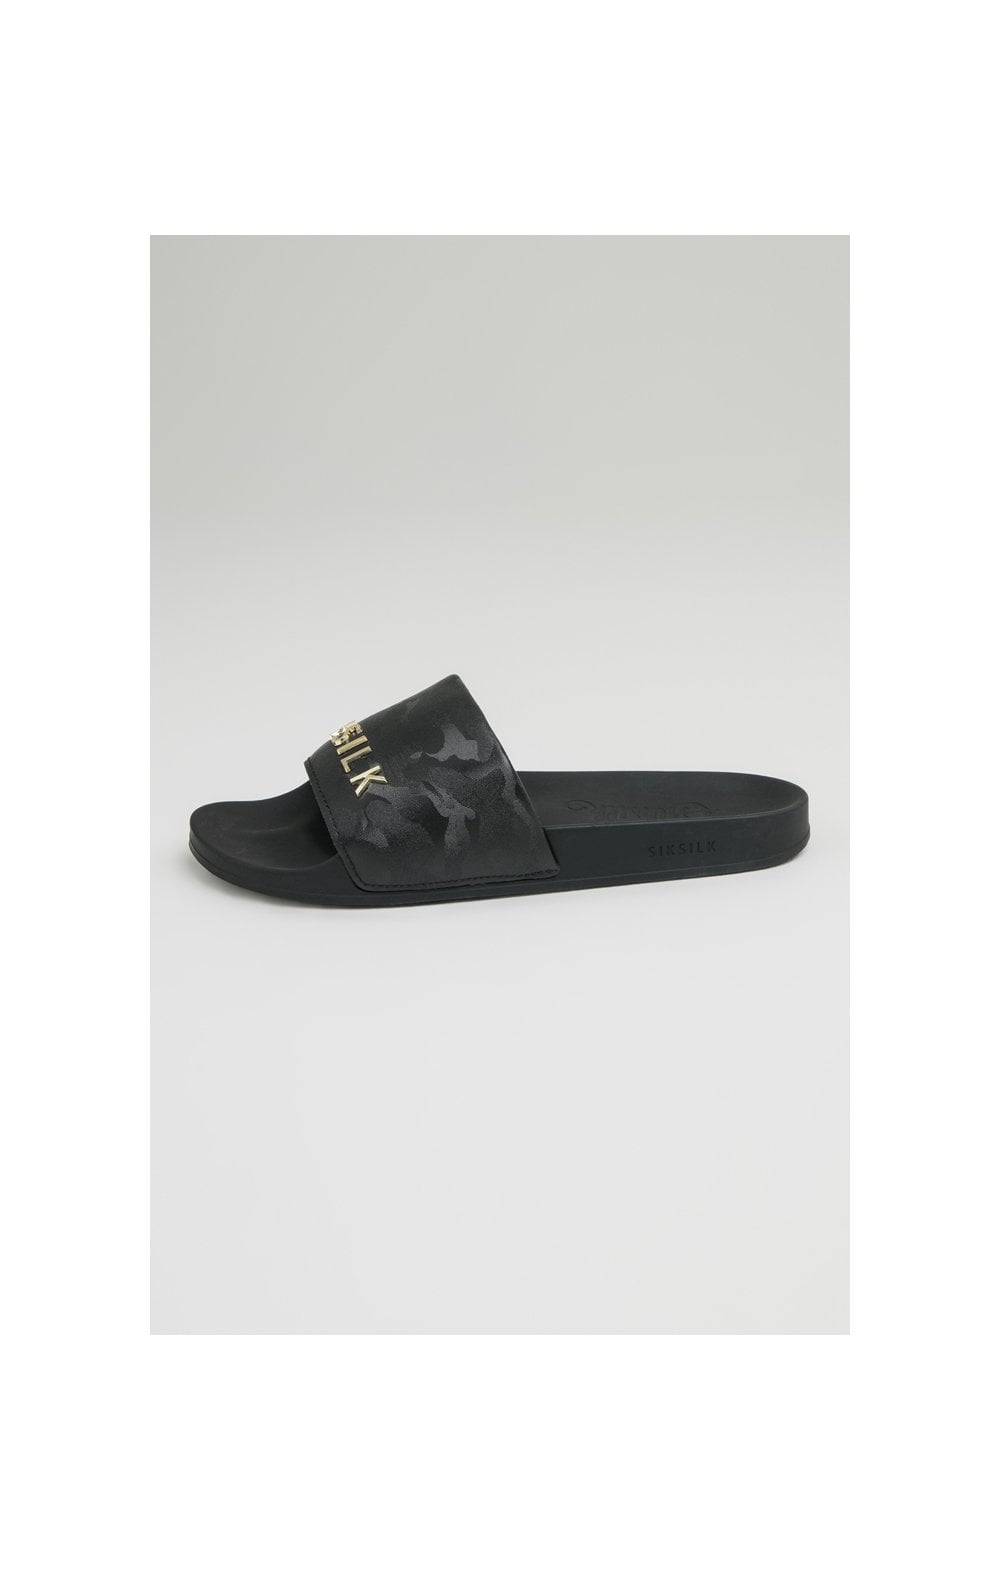 SikSilk Alpha Camo Slides - Black